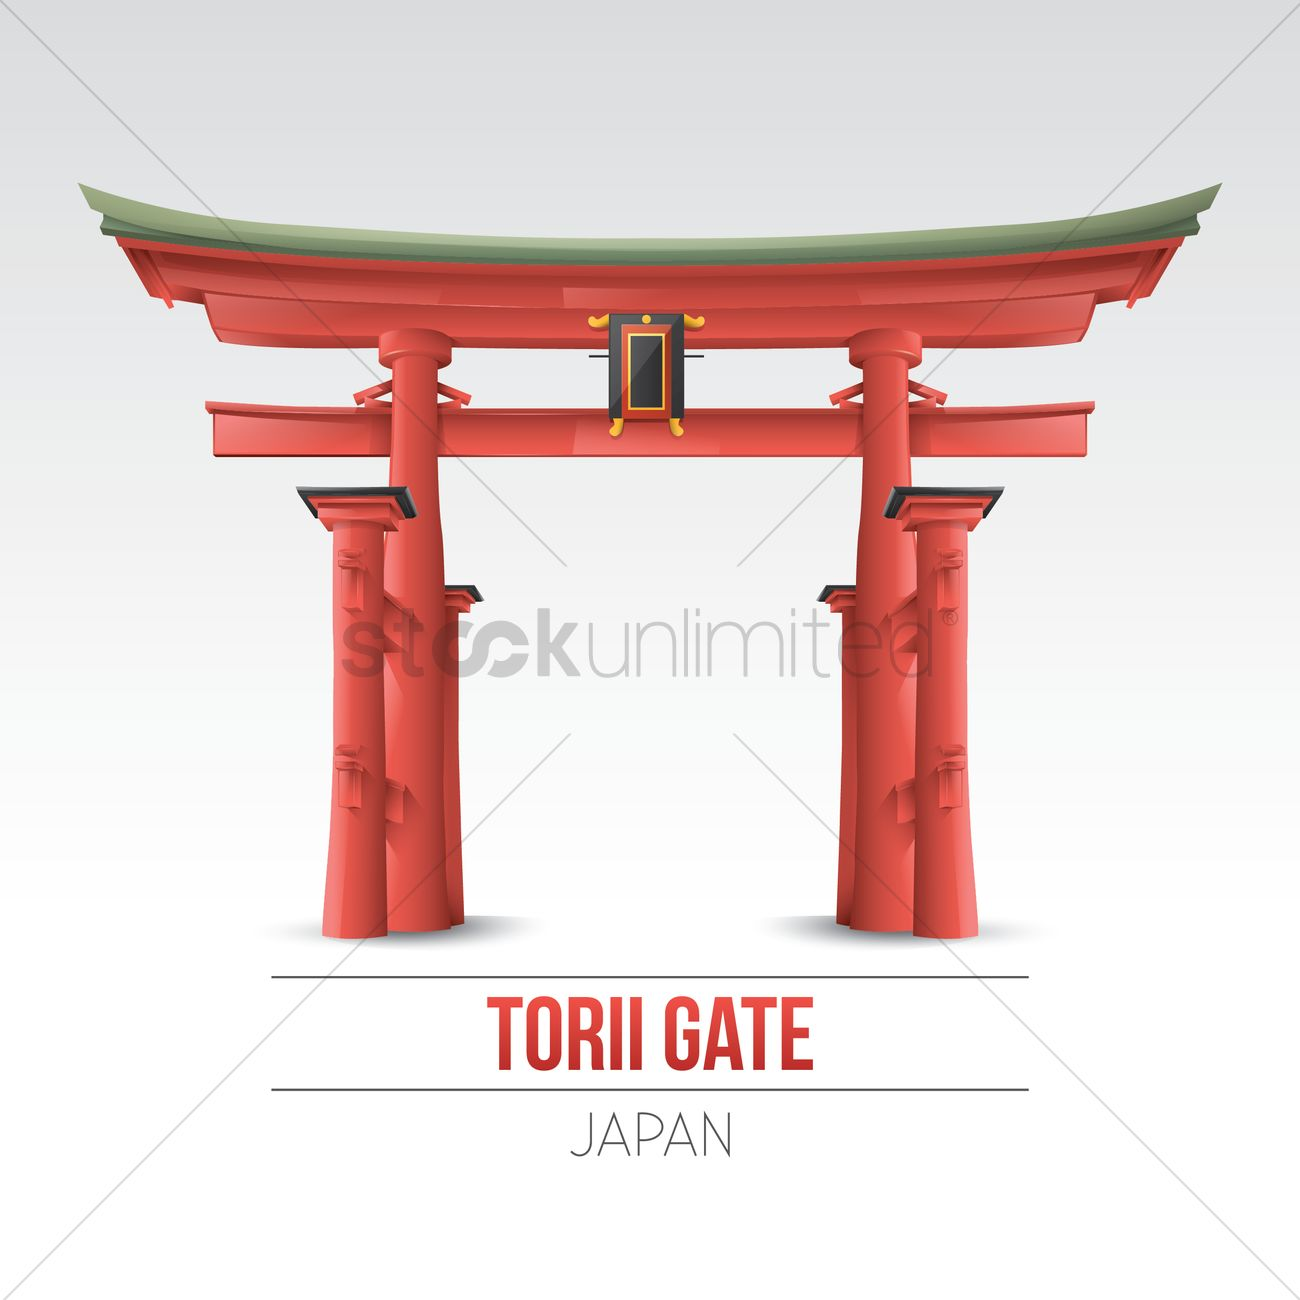 Torii Gate Wallpaper Vector Image 1603002 Stockunlimited